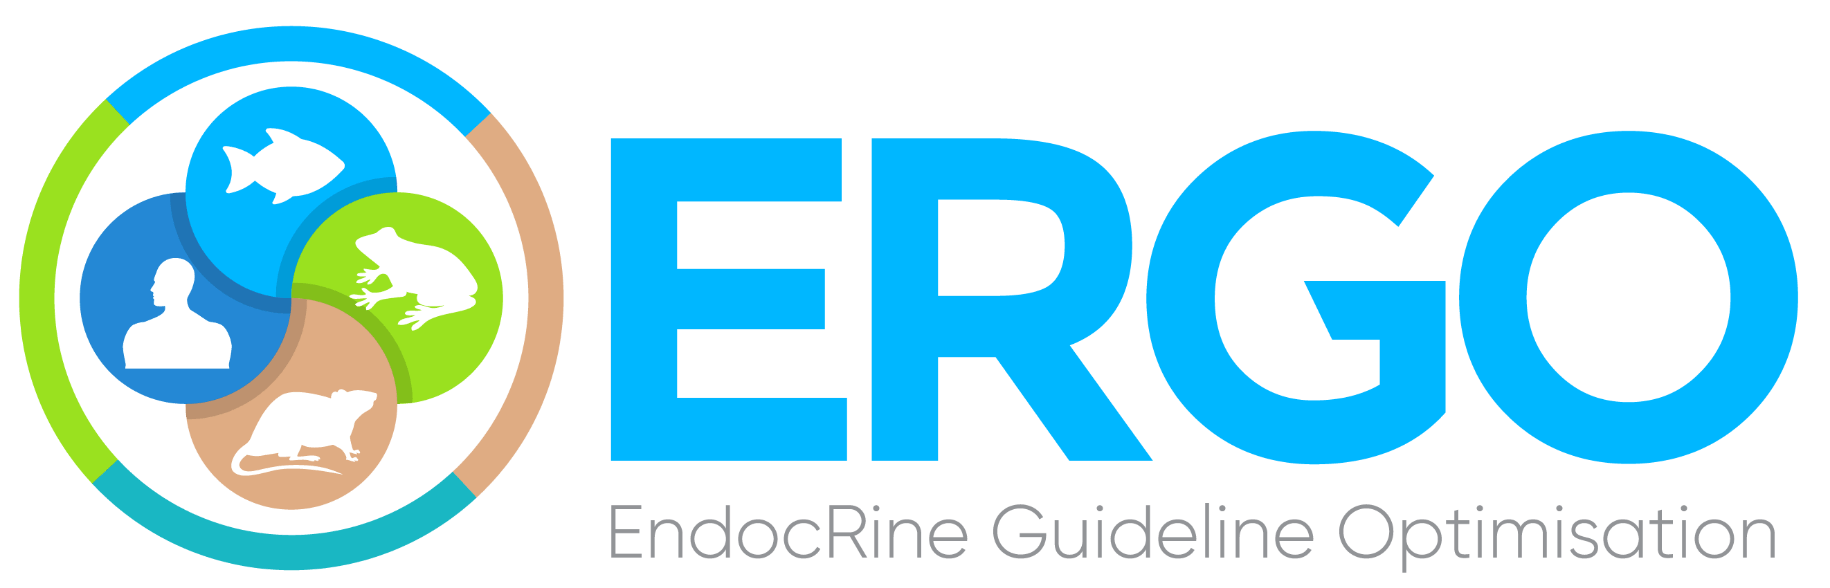 ergo project logo